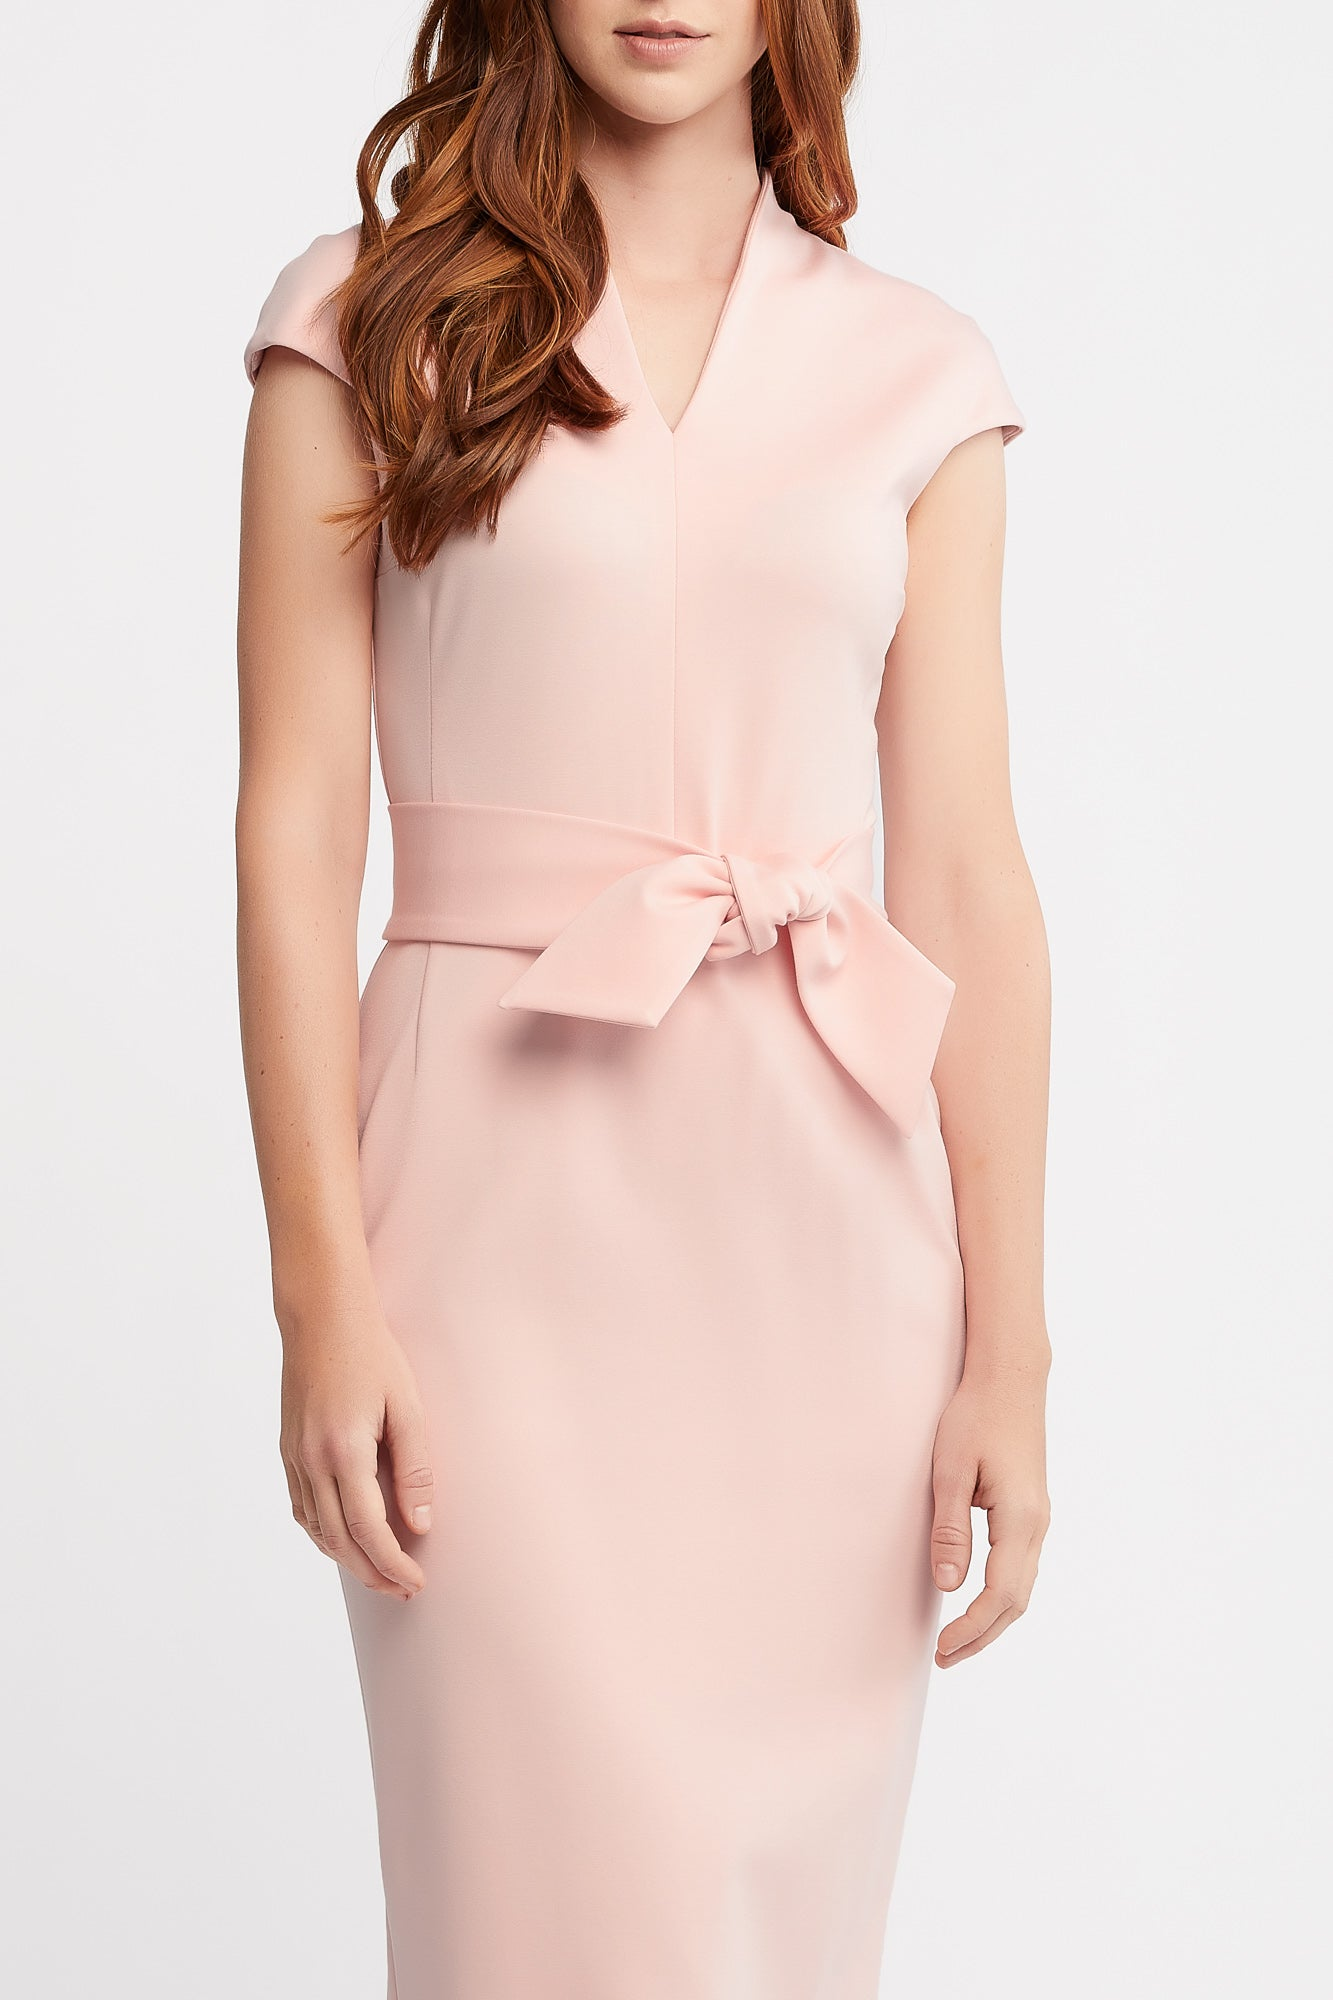 June Cap Sleeve Sheath Pink Work and Cocktail Dress.